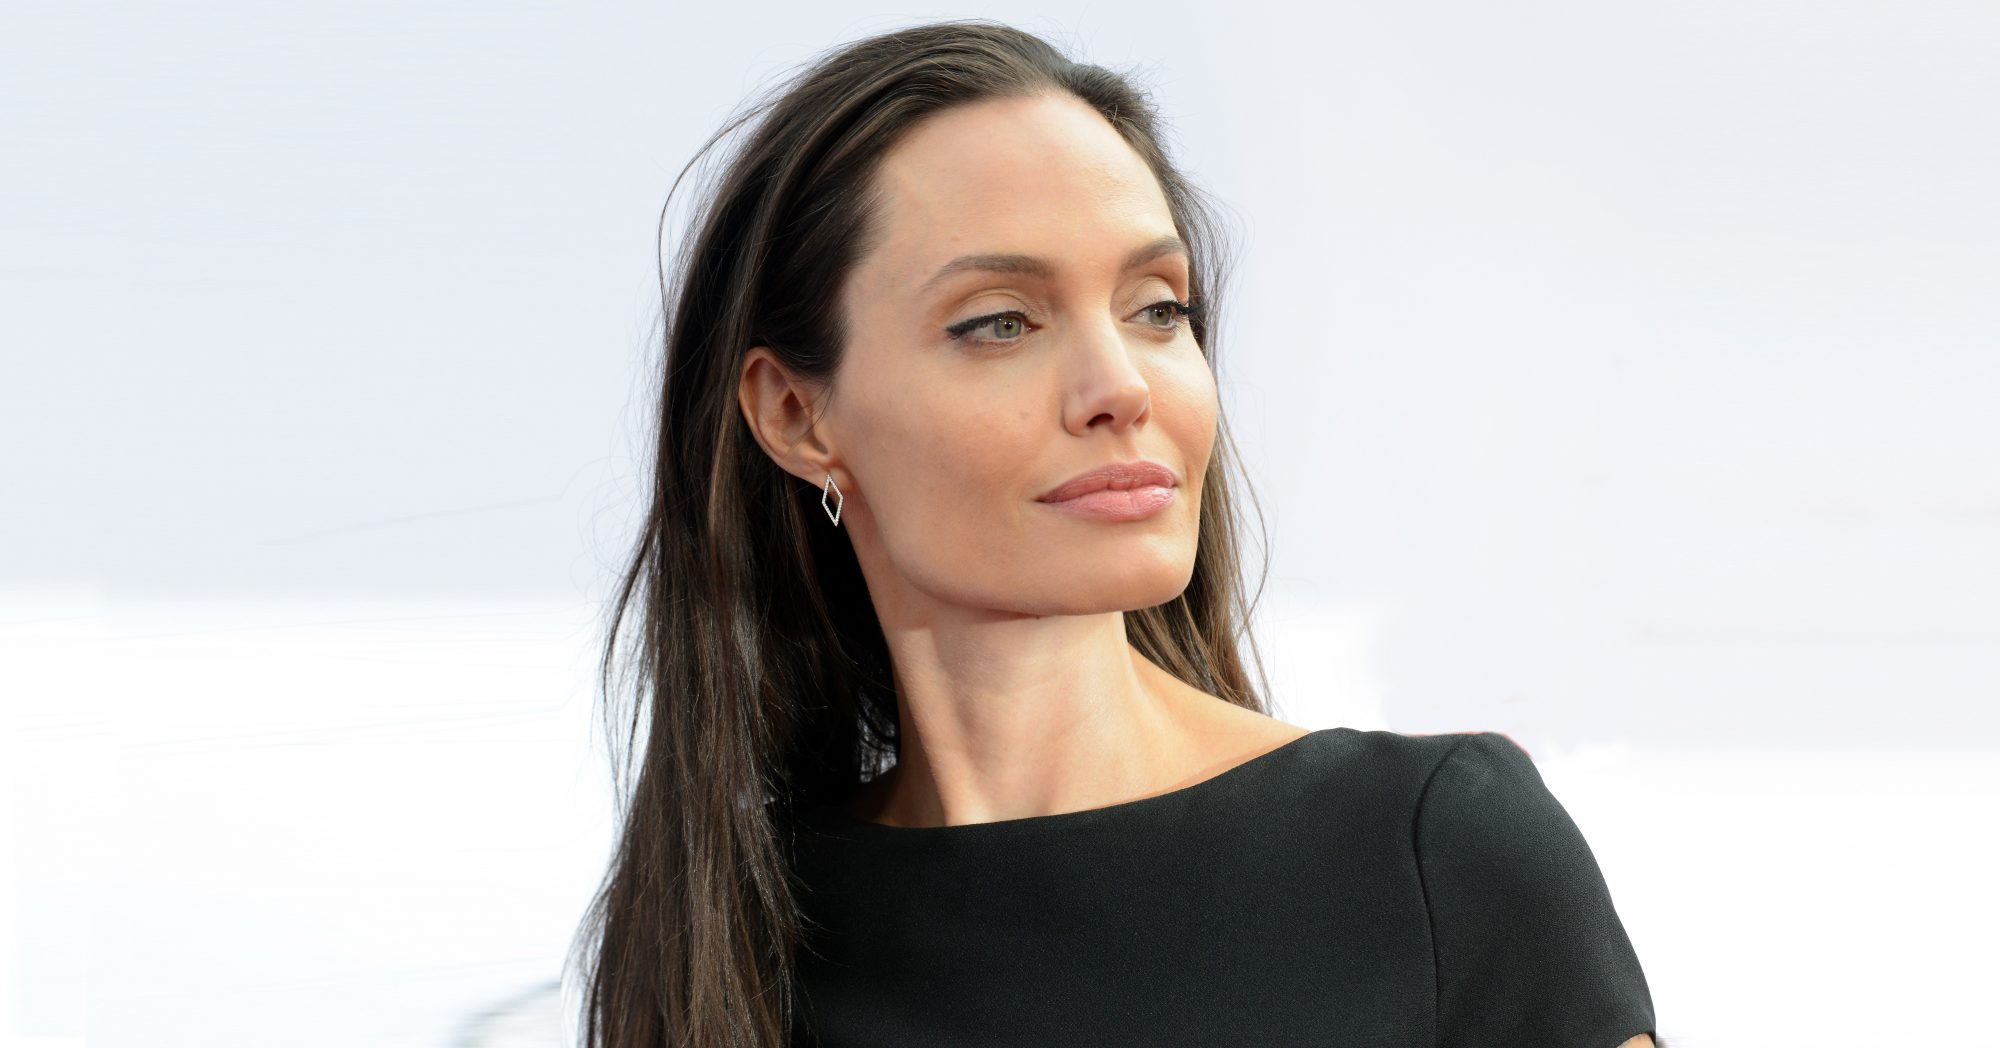 Angelina Jolie on Crying in the Shower, Baby Maddox, Menopause and More in Candid Interview